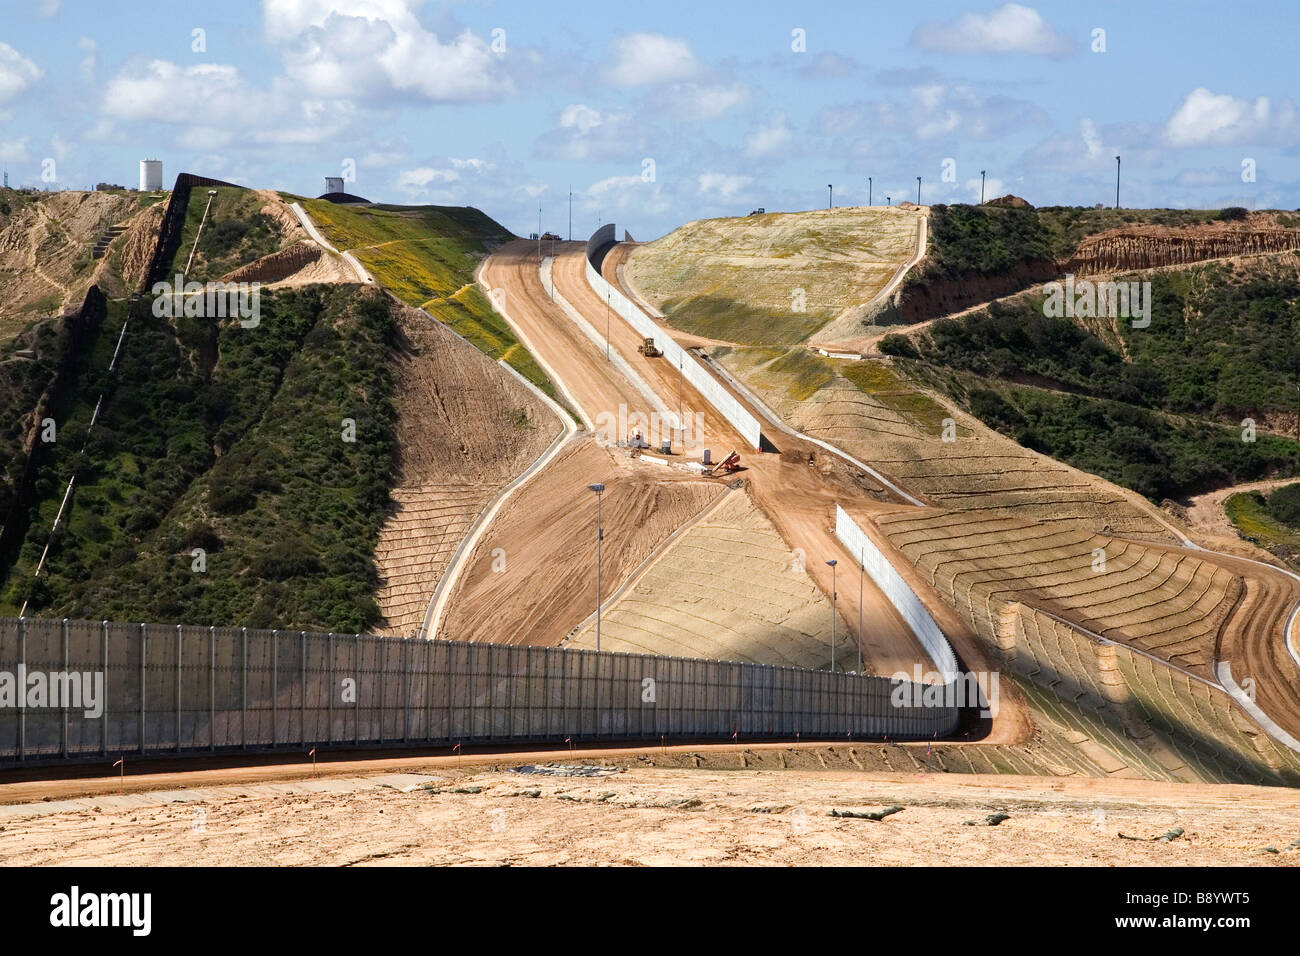 Construction of the border fence that prevents illegal immagrant crossings at the U S Mexico border near San Diego - Stock Image